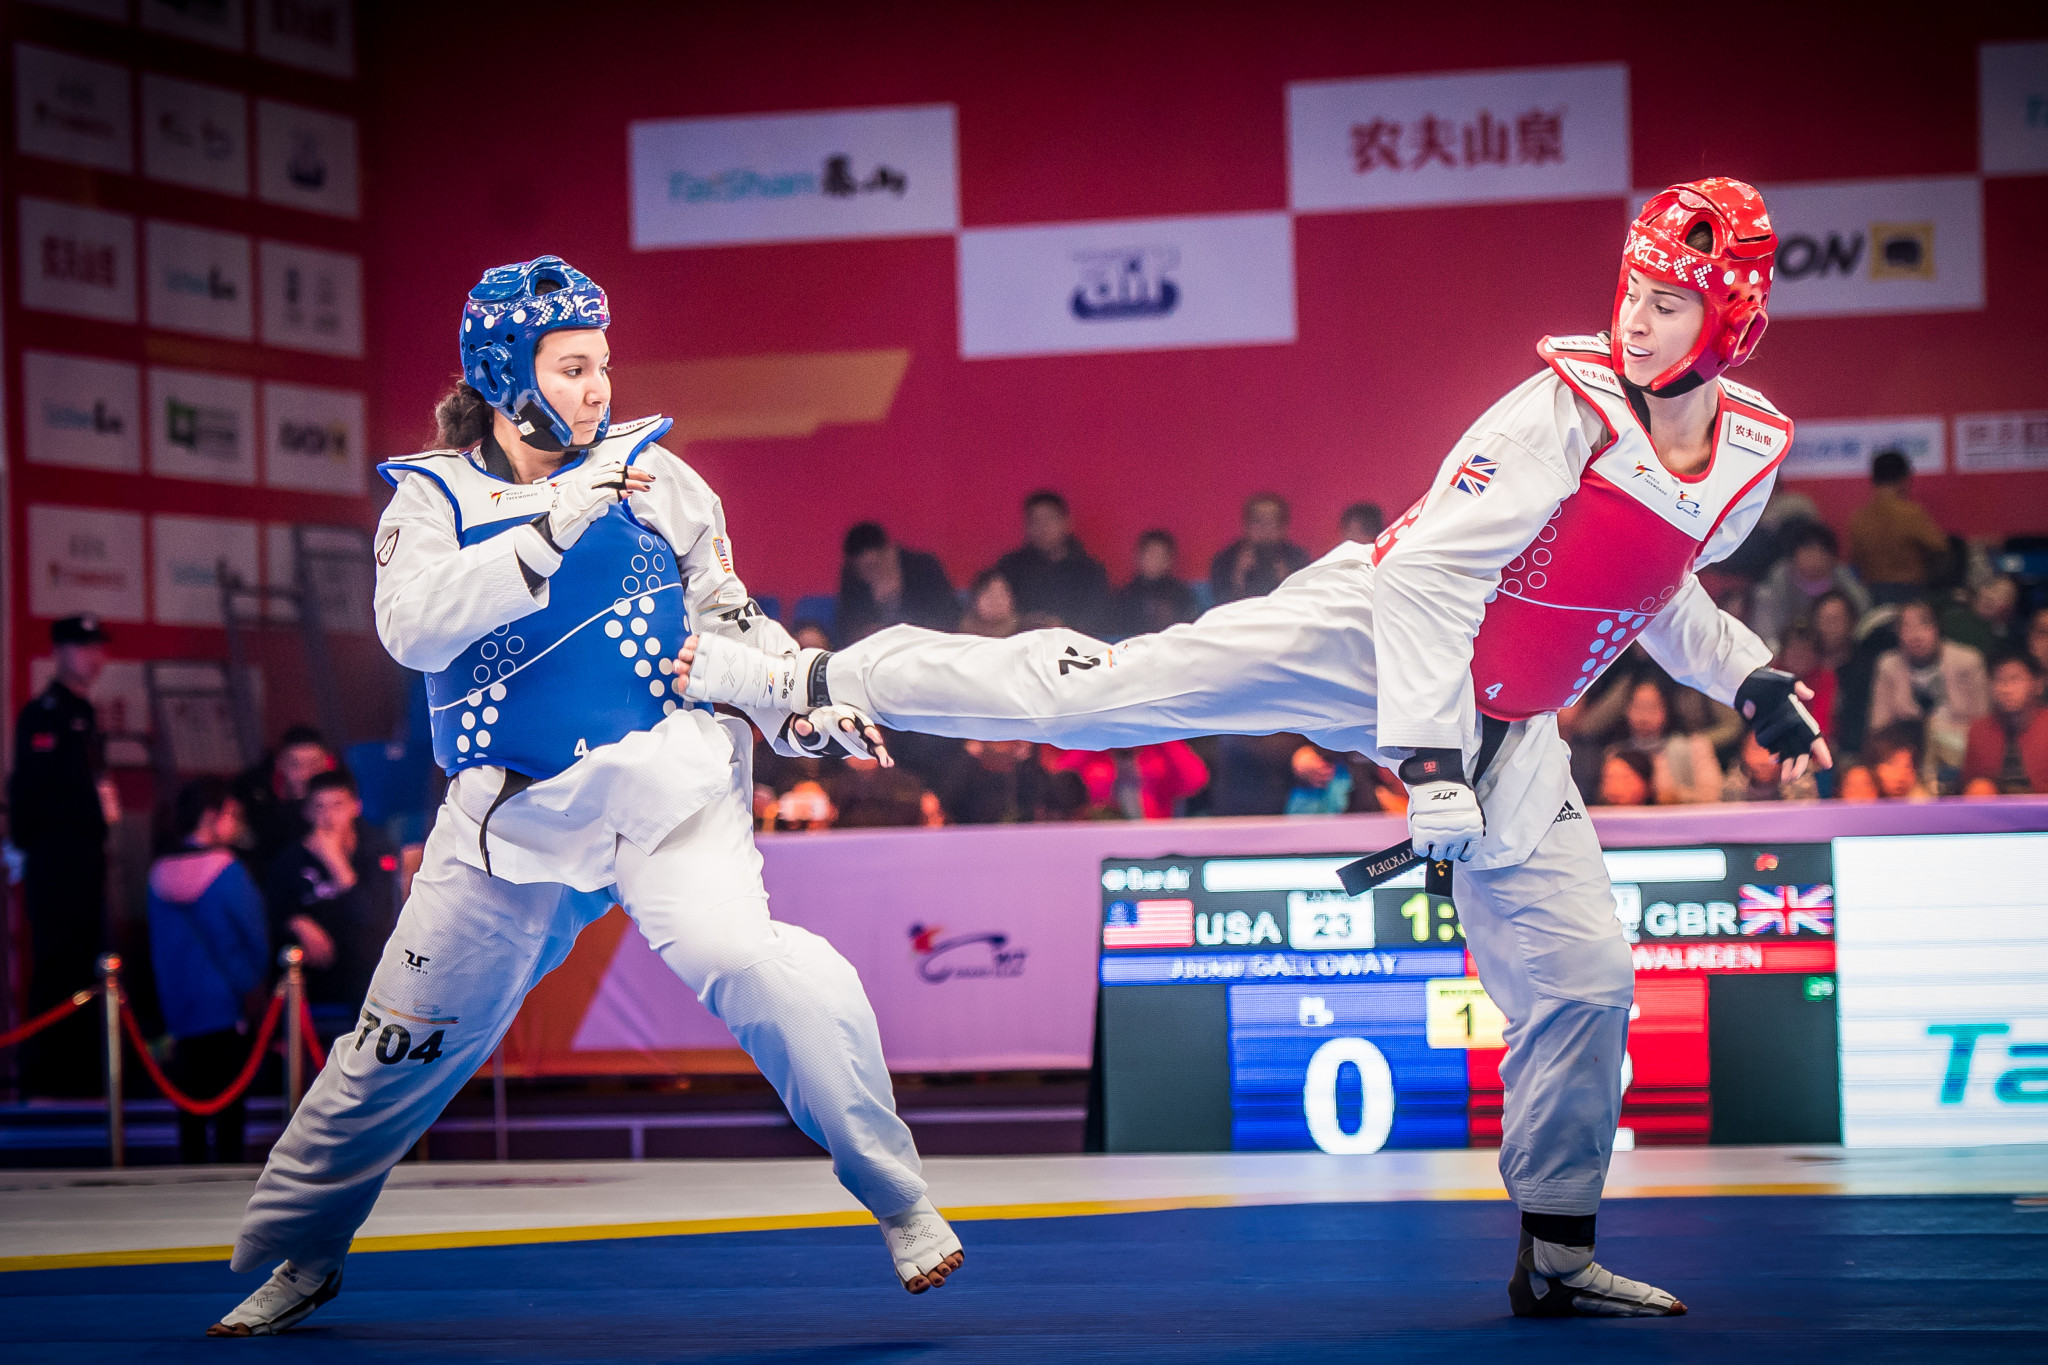 Walkden eased to a 10-2 victory over the United States' Jackie Galloway in the women's over 67kg final ©World Taekwondo